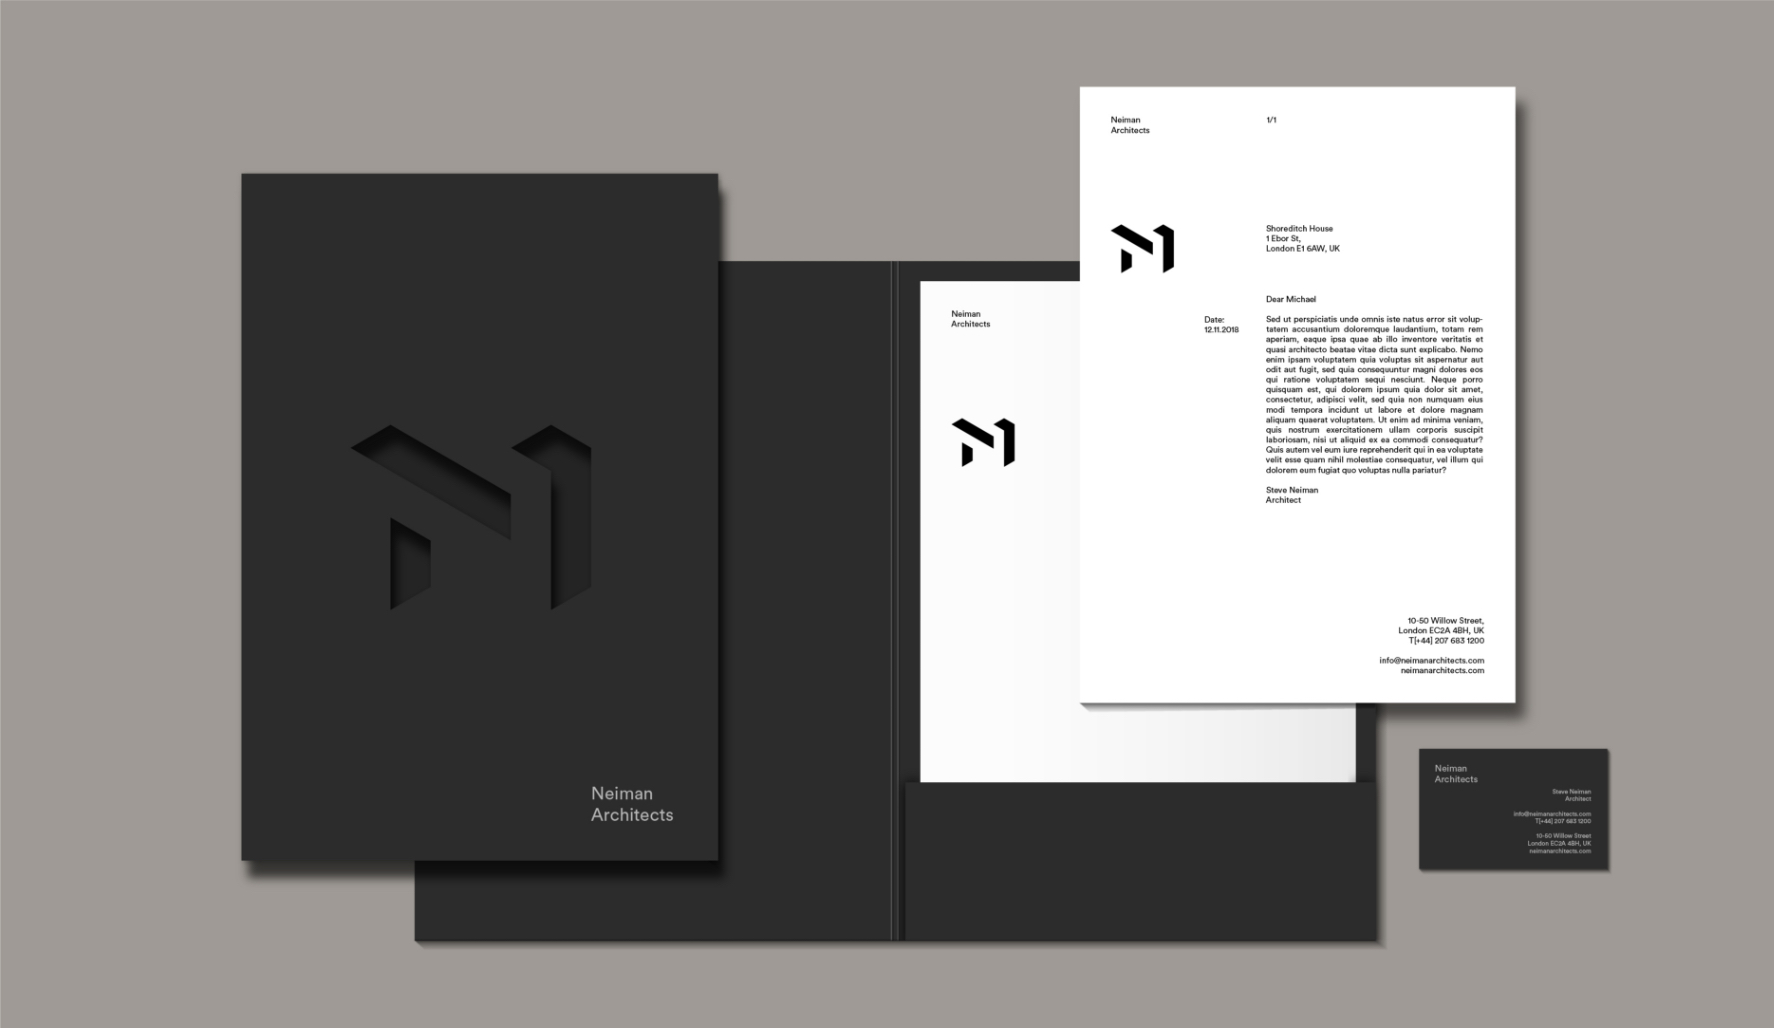 Neiman Architects brand identity design